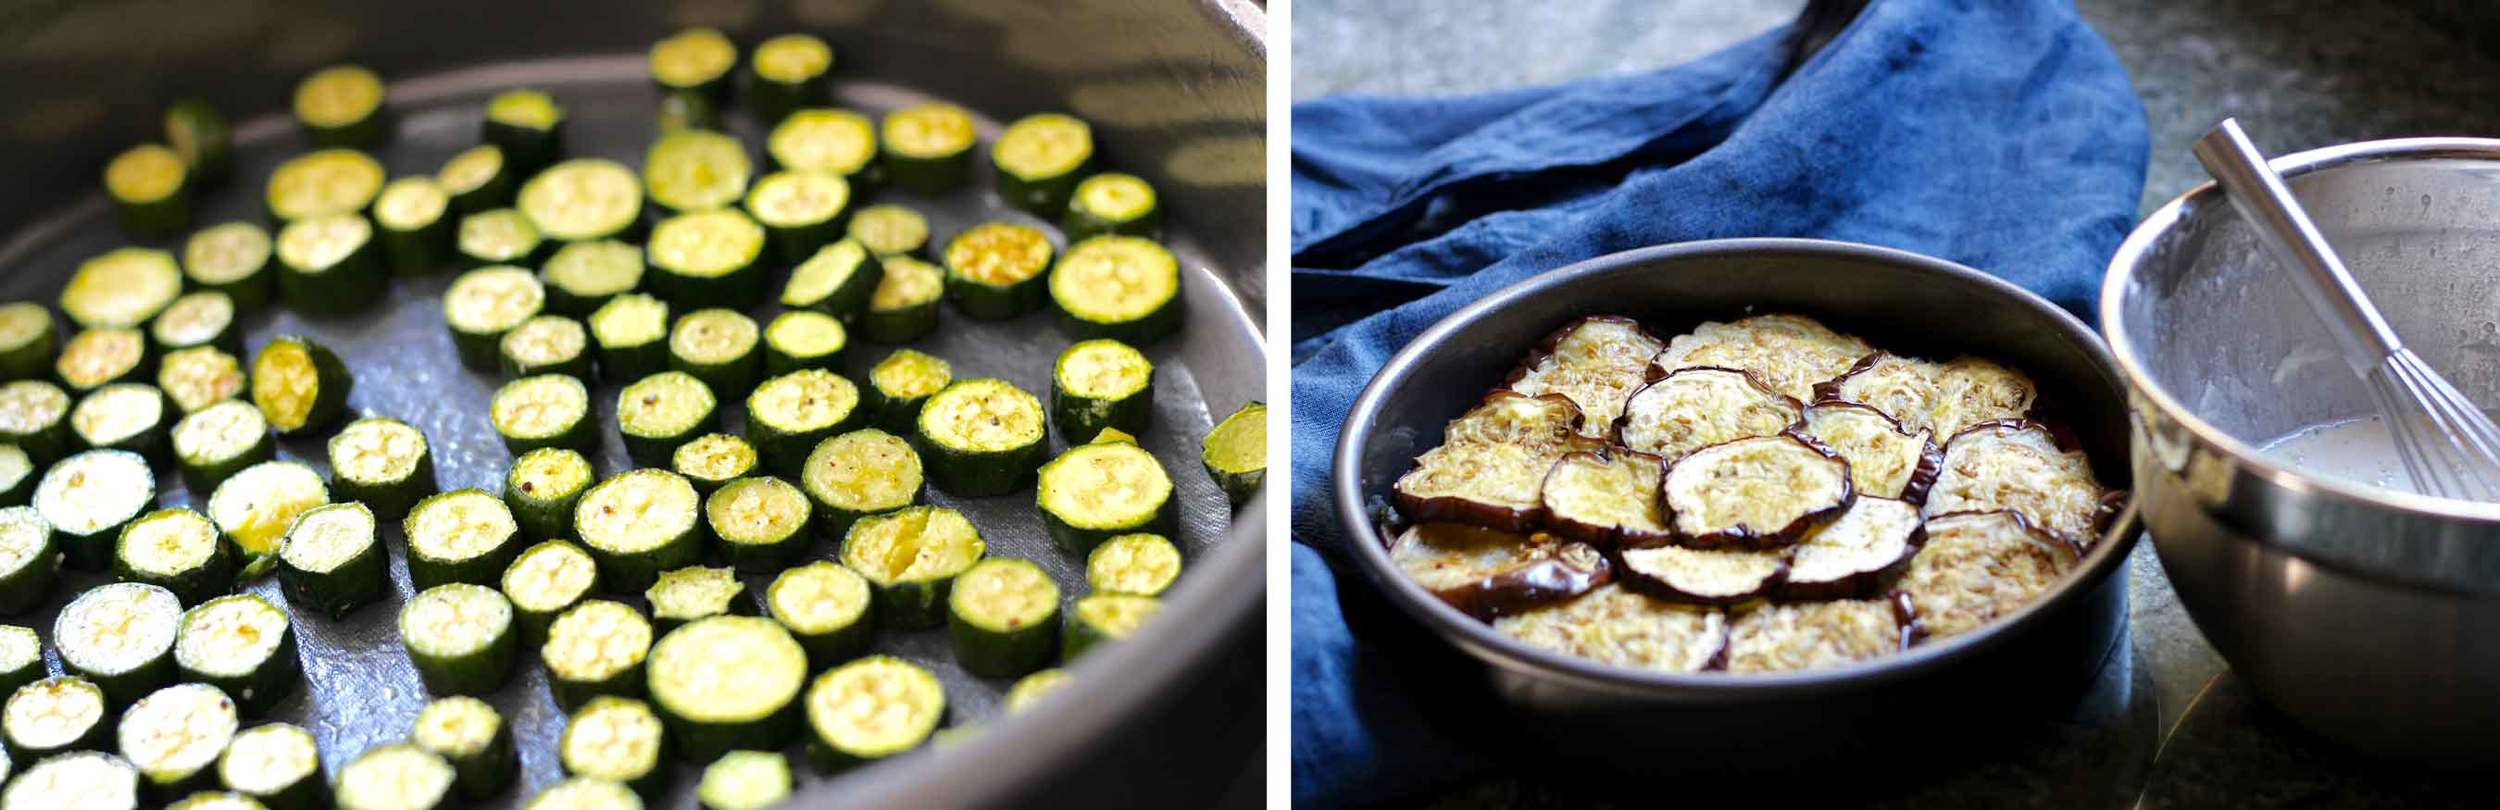 Making eggplant clafouti recipe by Thread & Whisk